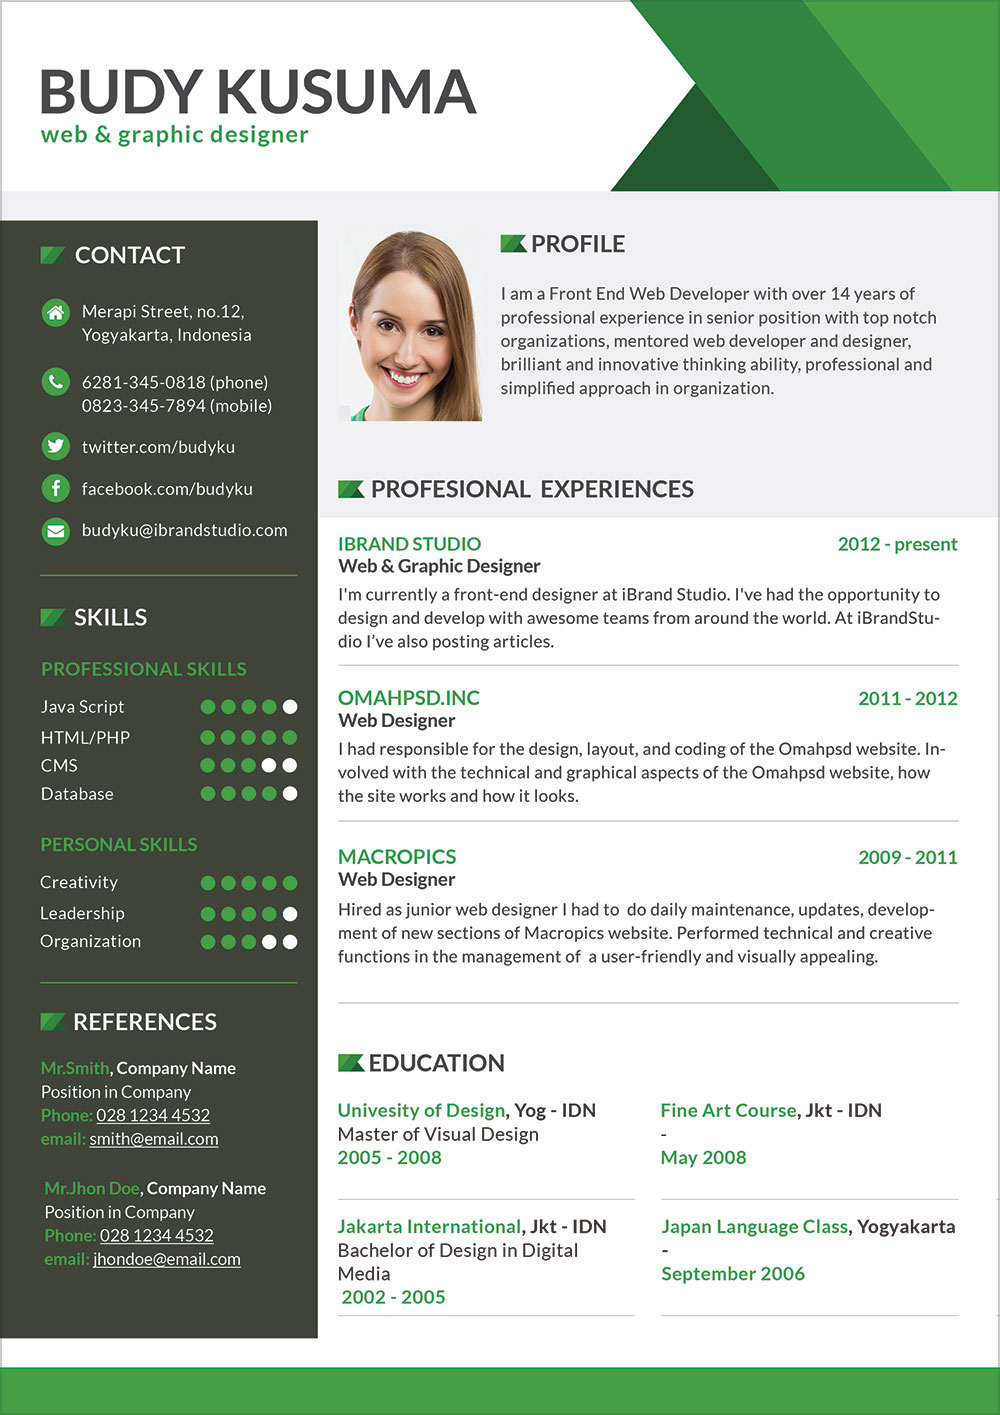 Free-Professional-Resume-Design-Templates-in-Photoshop-PSD-Format-2